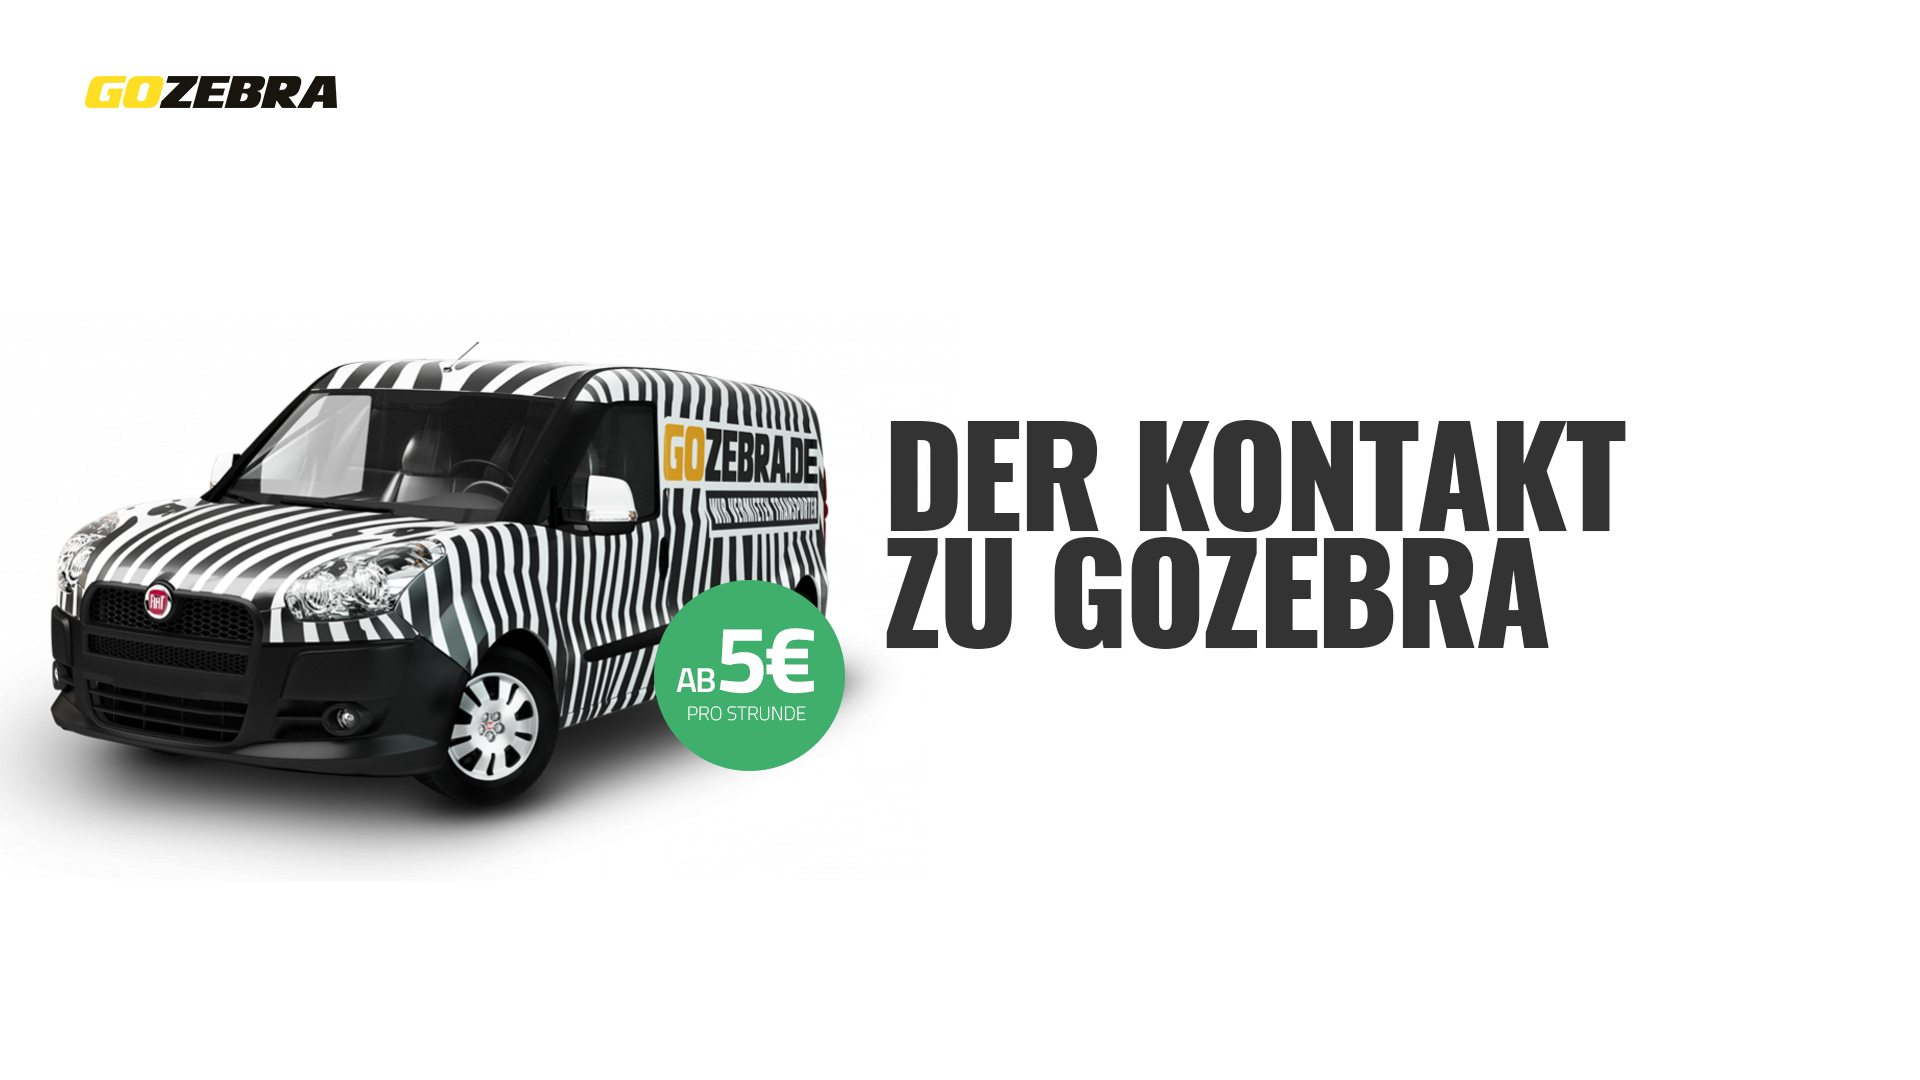 transporter mieten kundenservice kontakt gozebra. Black Bedroom Furniture Sets. Home Design Ideas